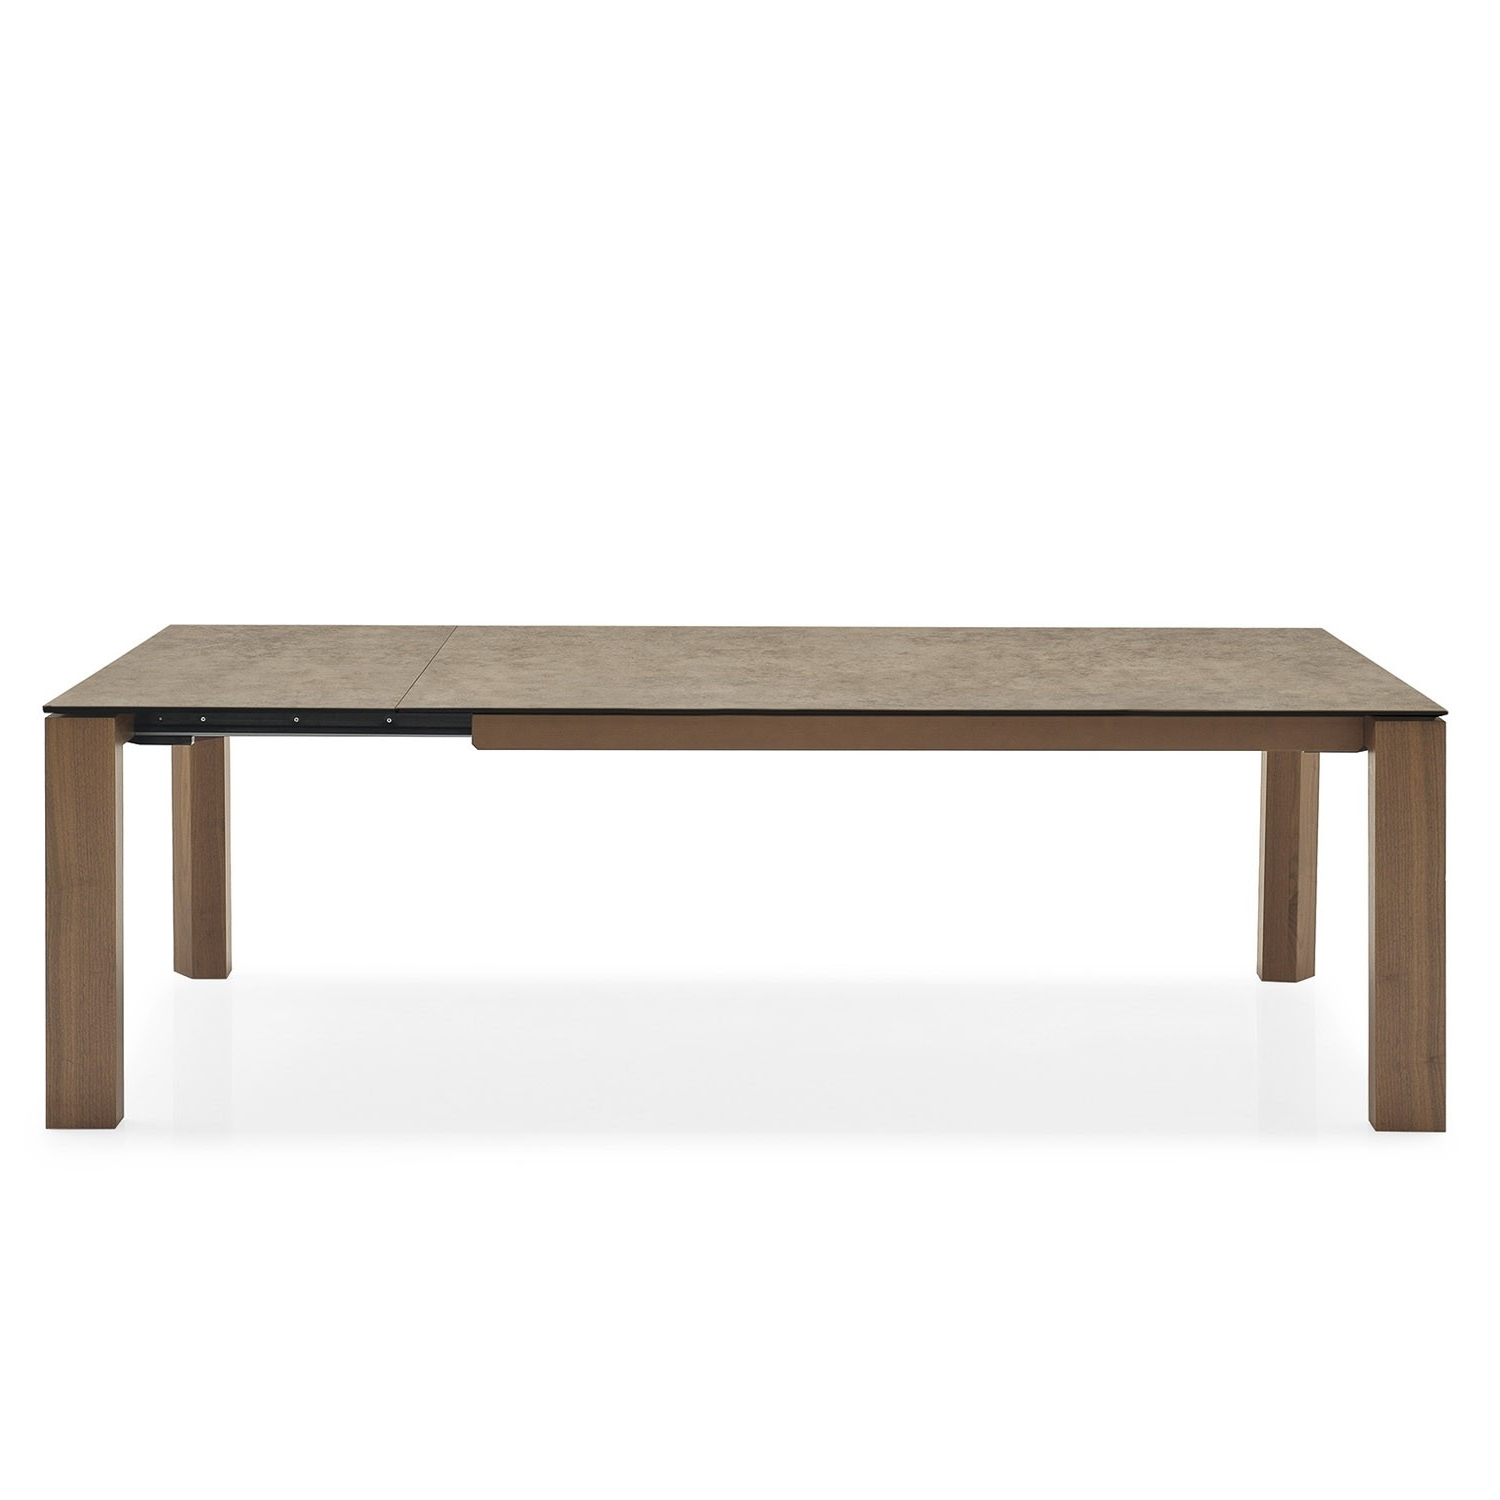 Calligaris Omnia Glass Extending Dining Table – Furnatical Within Widely Used Extending Outdoor Dining Tables (Gallery 9 of 25)